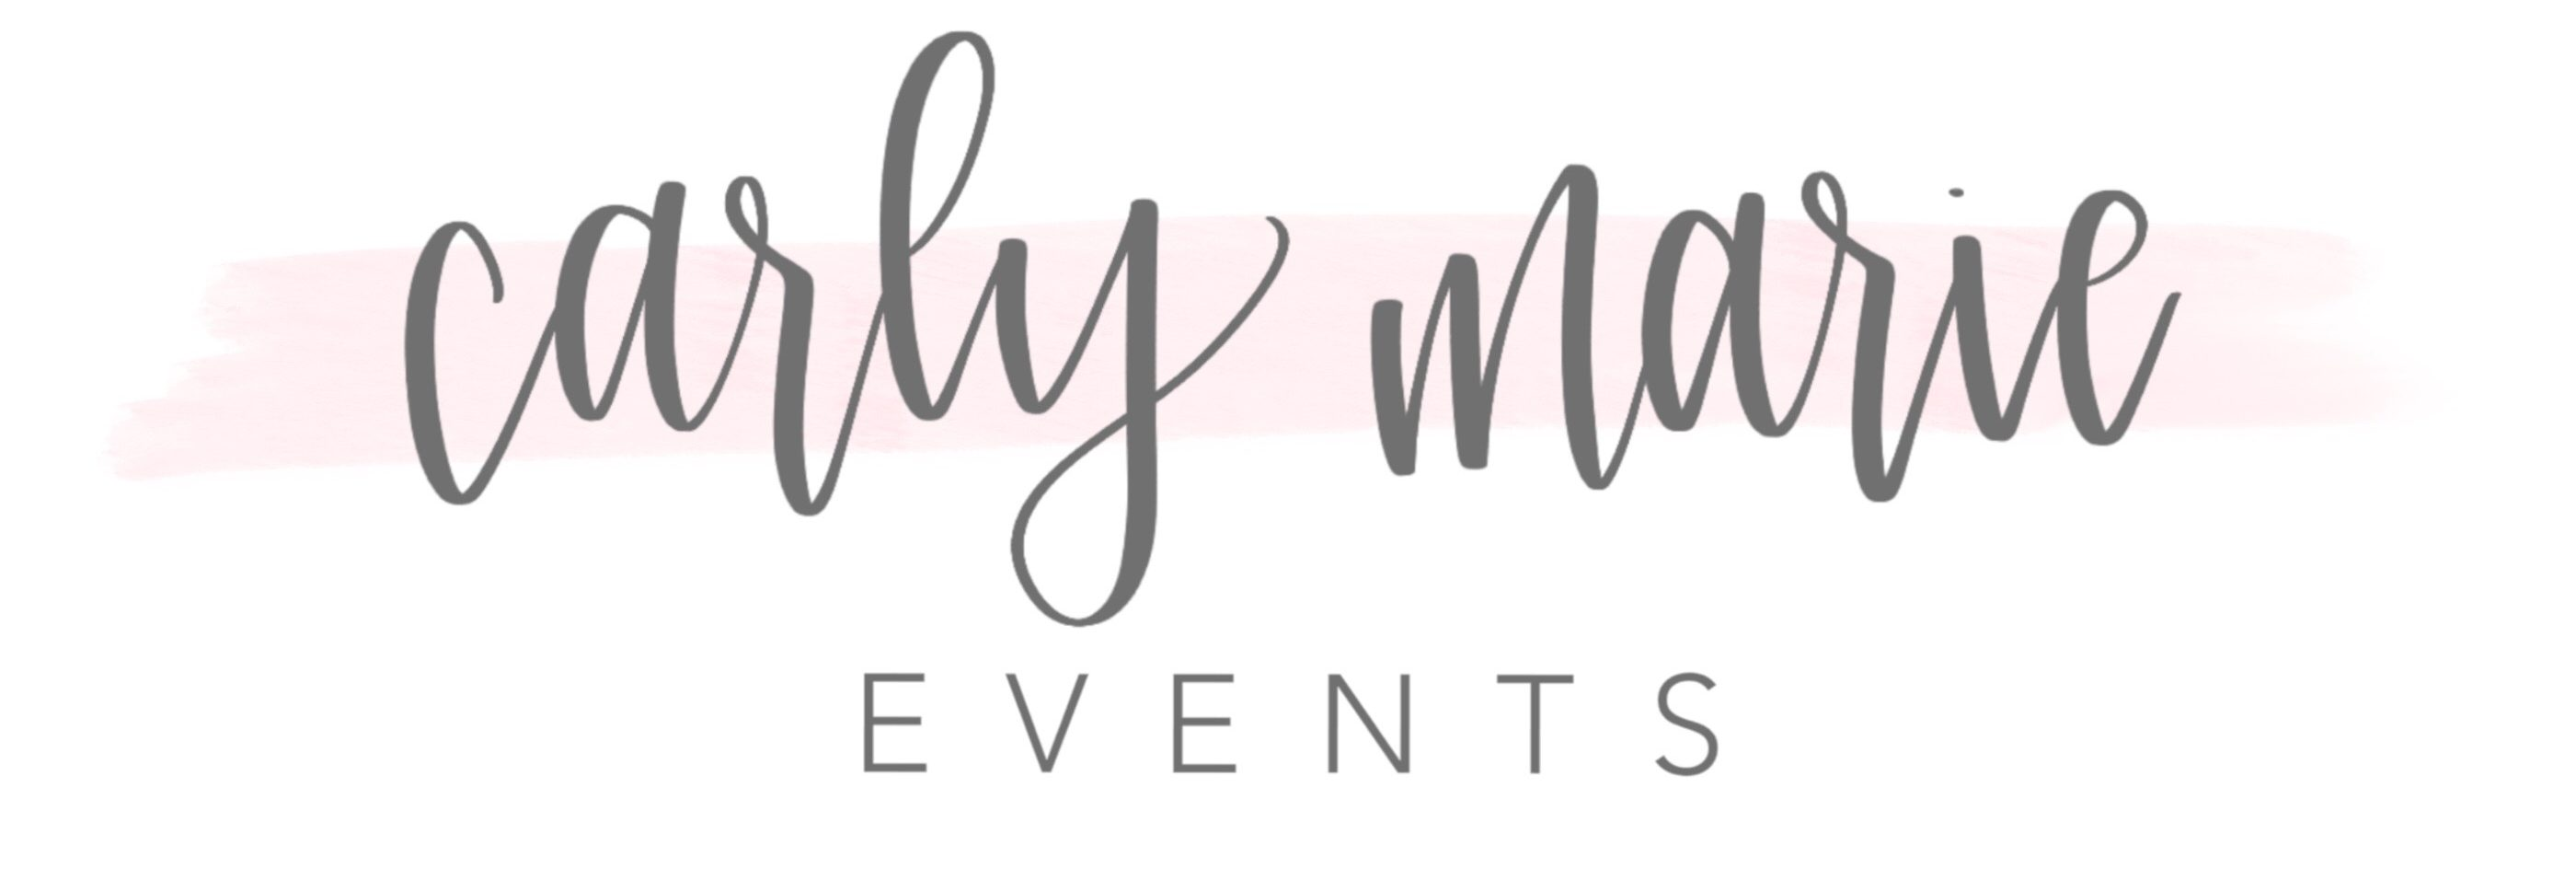 Carly Marie Events